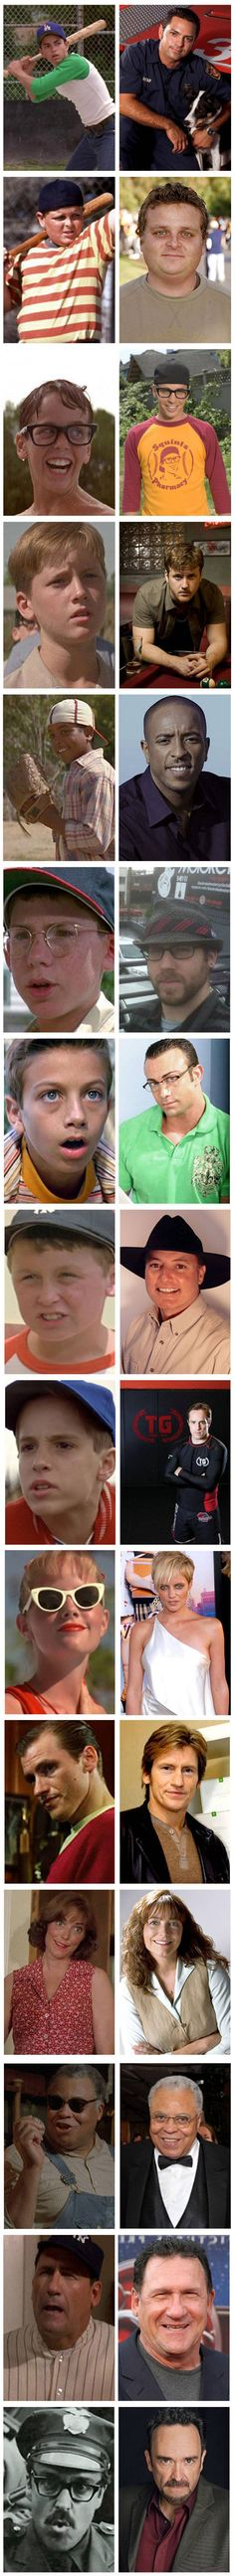 @Teresa Selberg Selberg Galasso Youll like this!! The Sandlot Then and Now